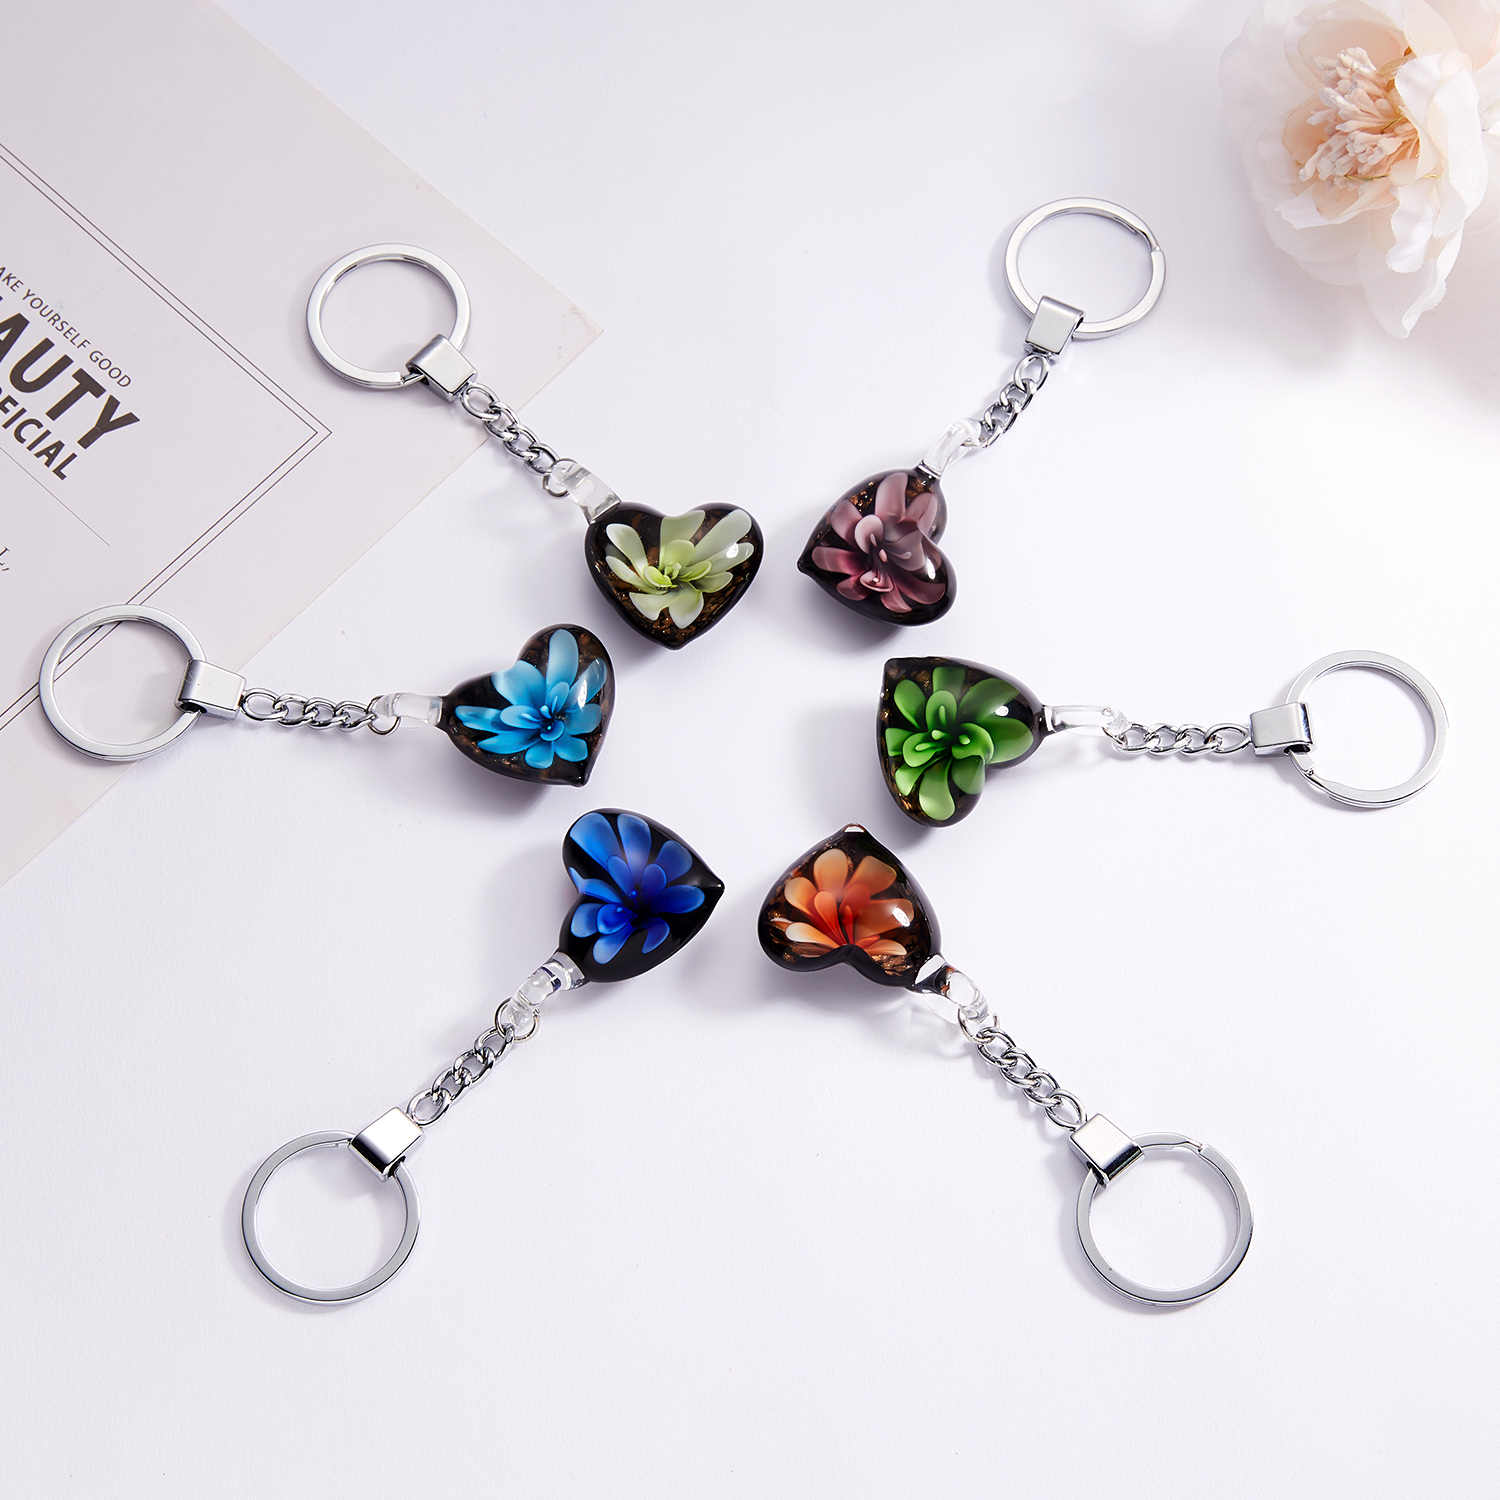 Elegant Crystal Rhinestone Geometric Keychain For Women Girls Gold Color Metal Car Key Rings Creative Fashion Jewelry Gift Q-005